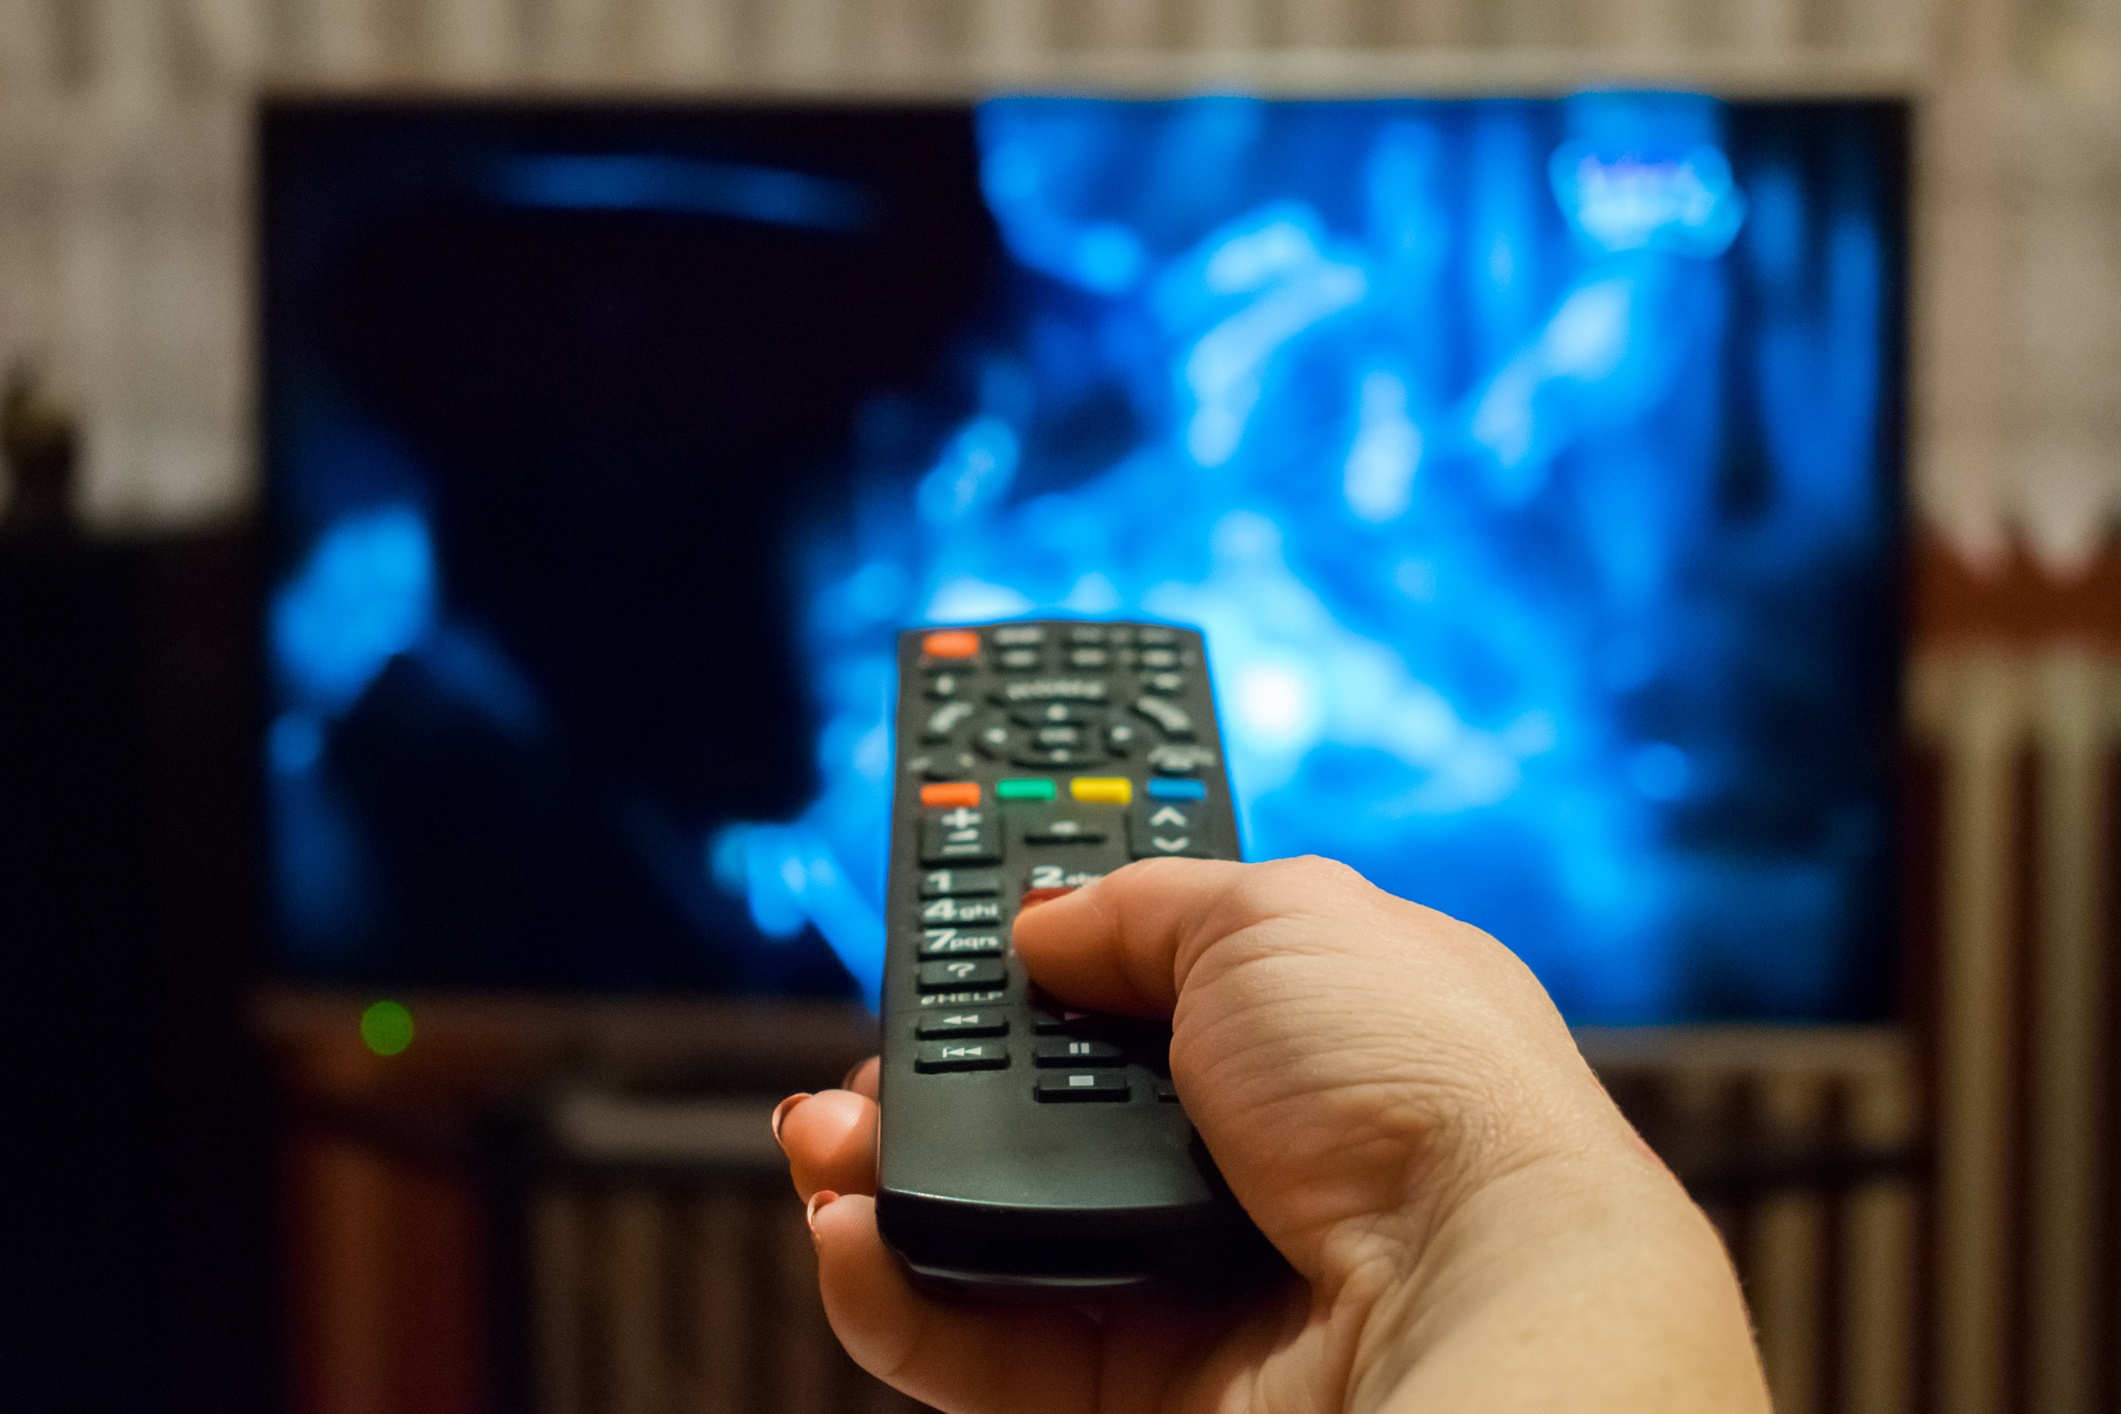 TV Remote. JConnelly Blog Brand Integrations Bridge the Gap Between Advertising and PR